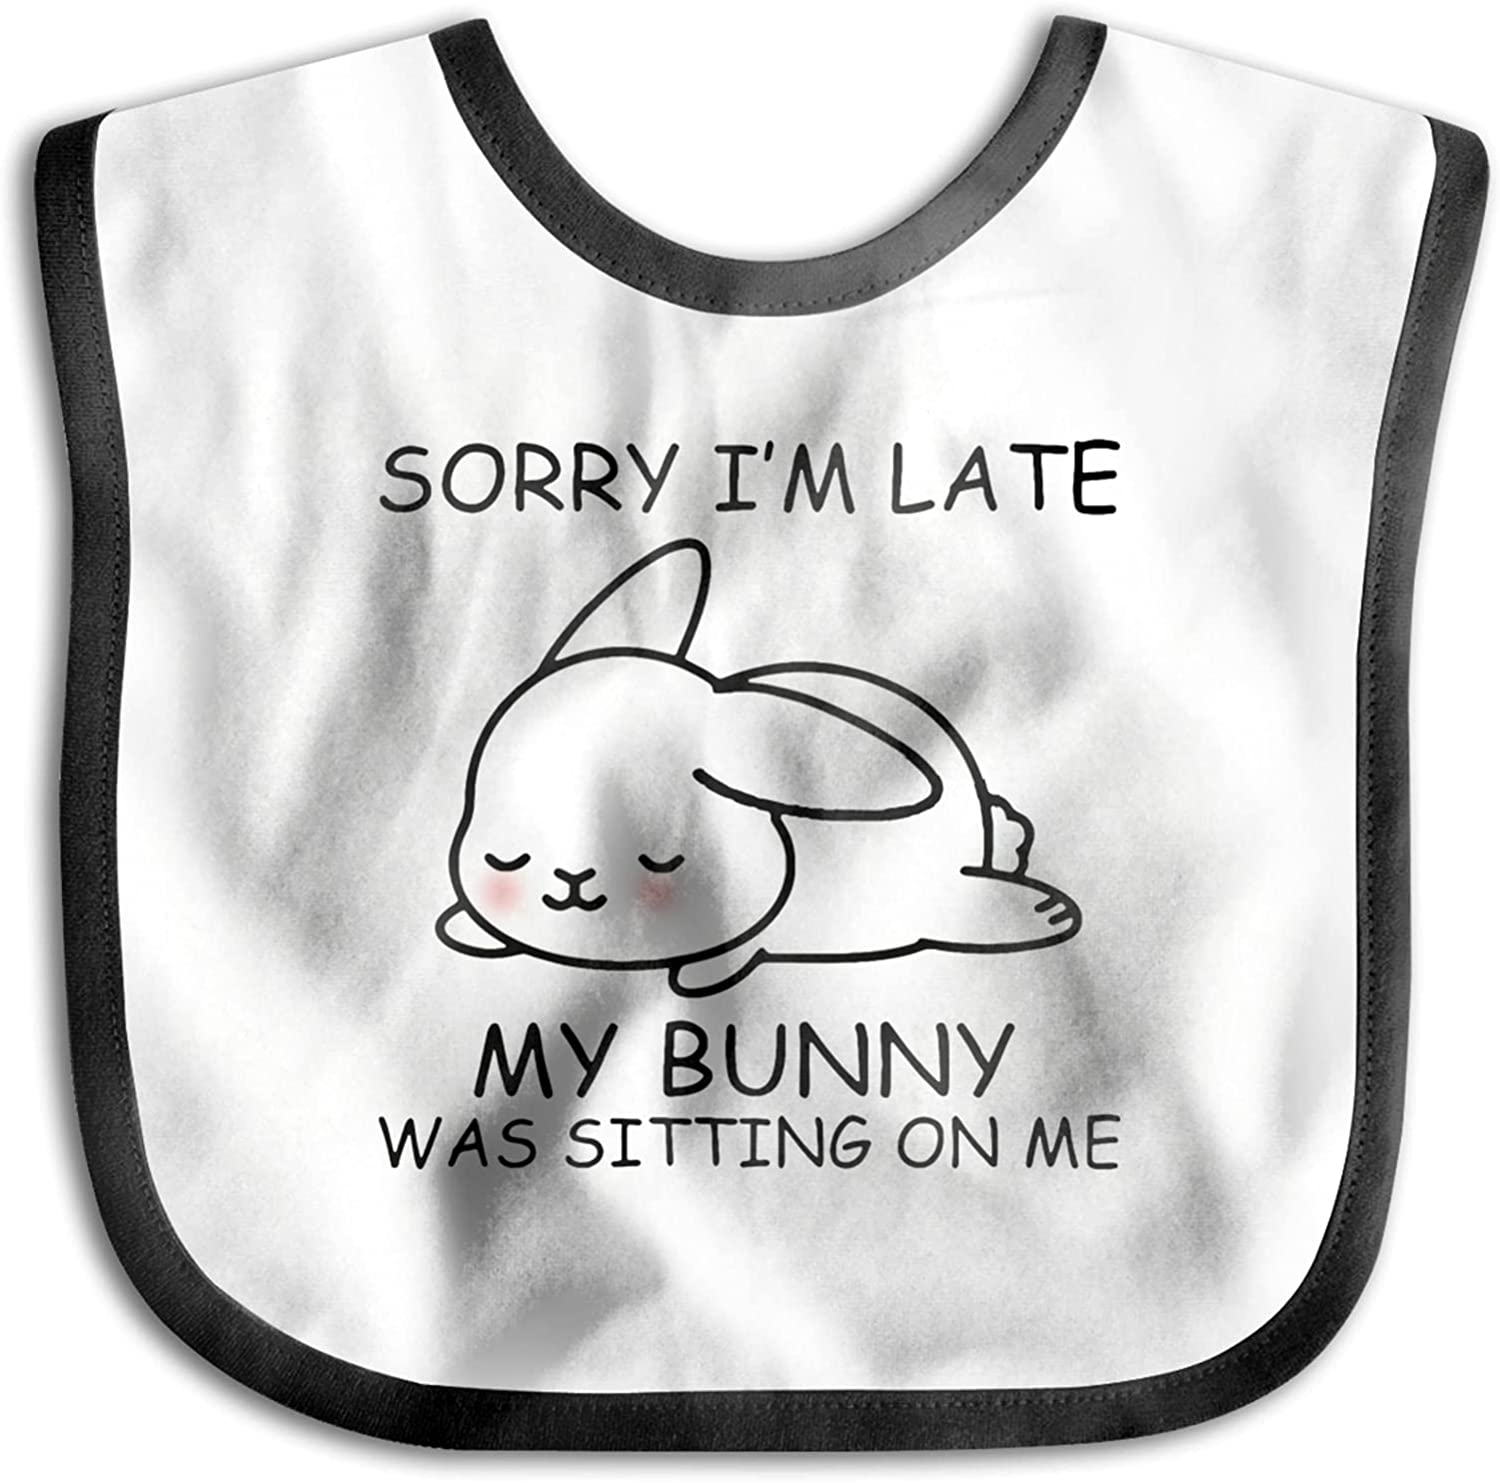 wobzfrok Sorry I Am Late My Bunny Baby Sitting 70% OFF Outlet Special price for a limited time Bib was Me On